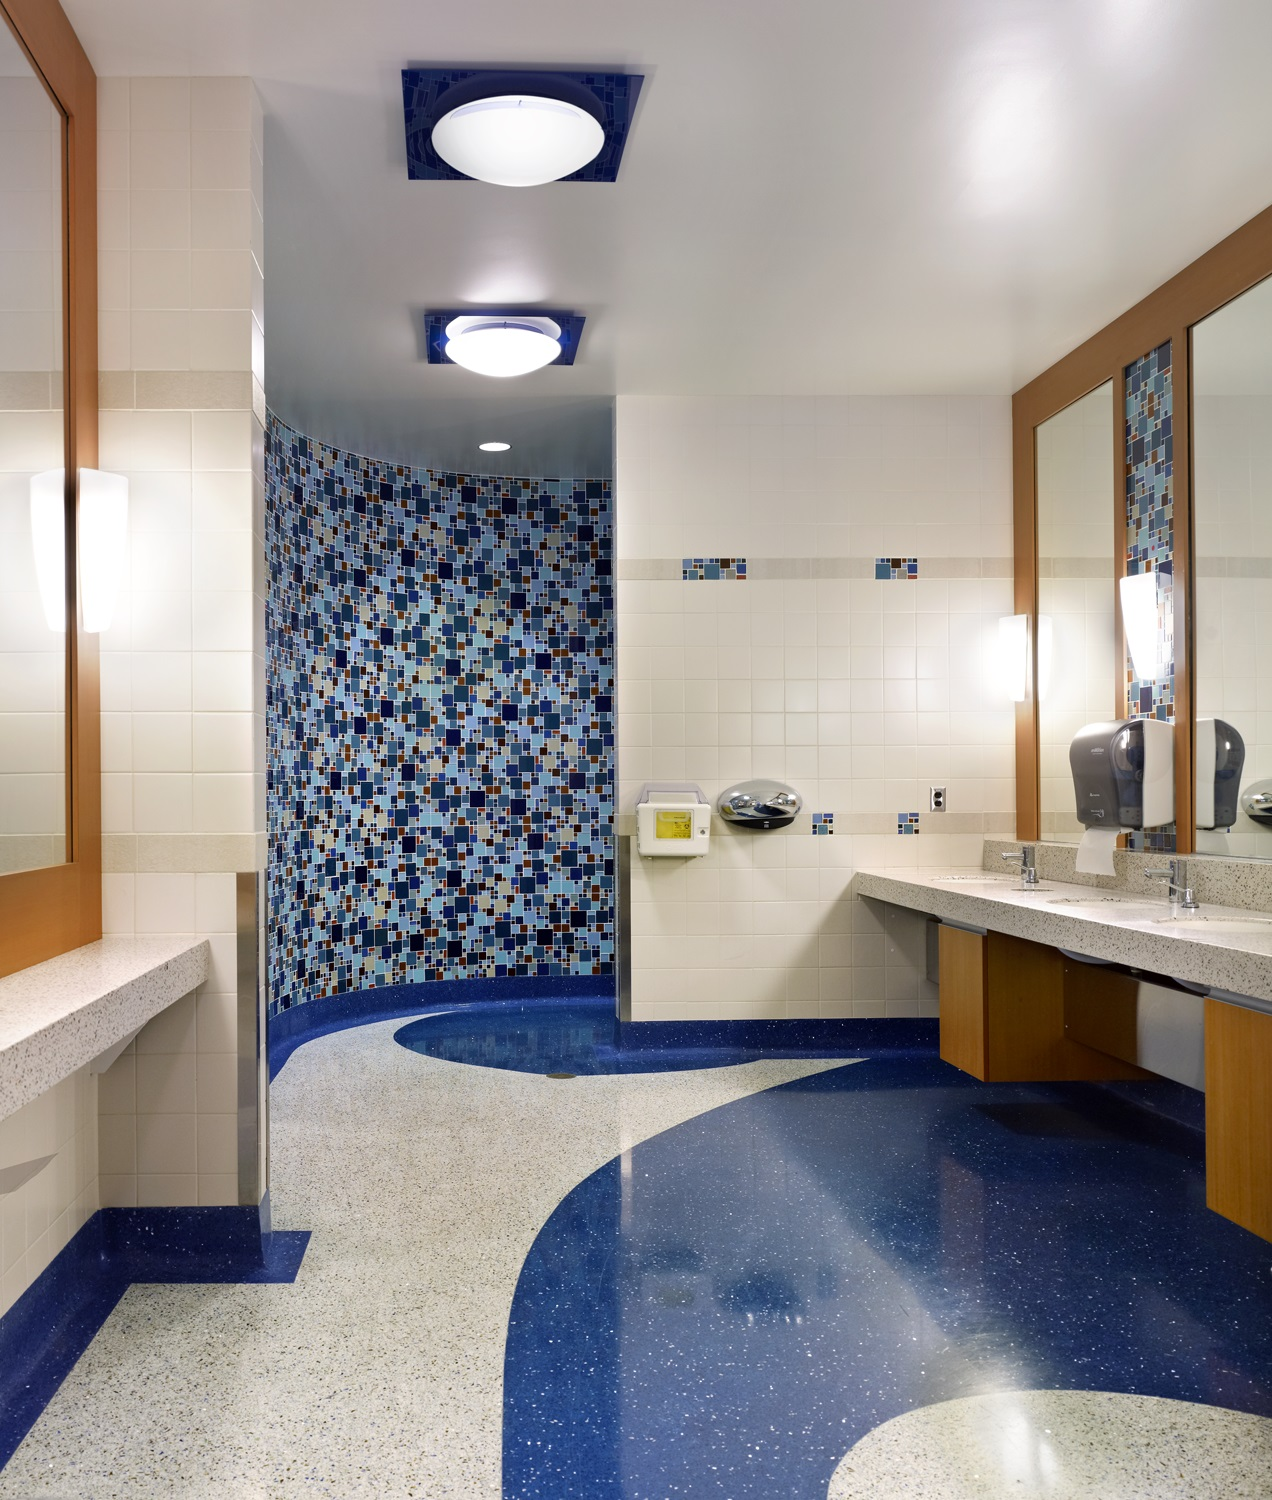 Best bathroom nominees announced - Construction Canada